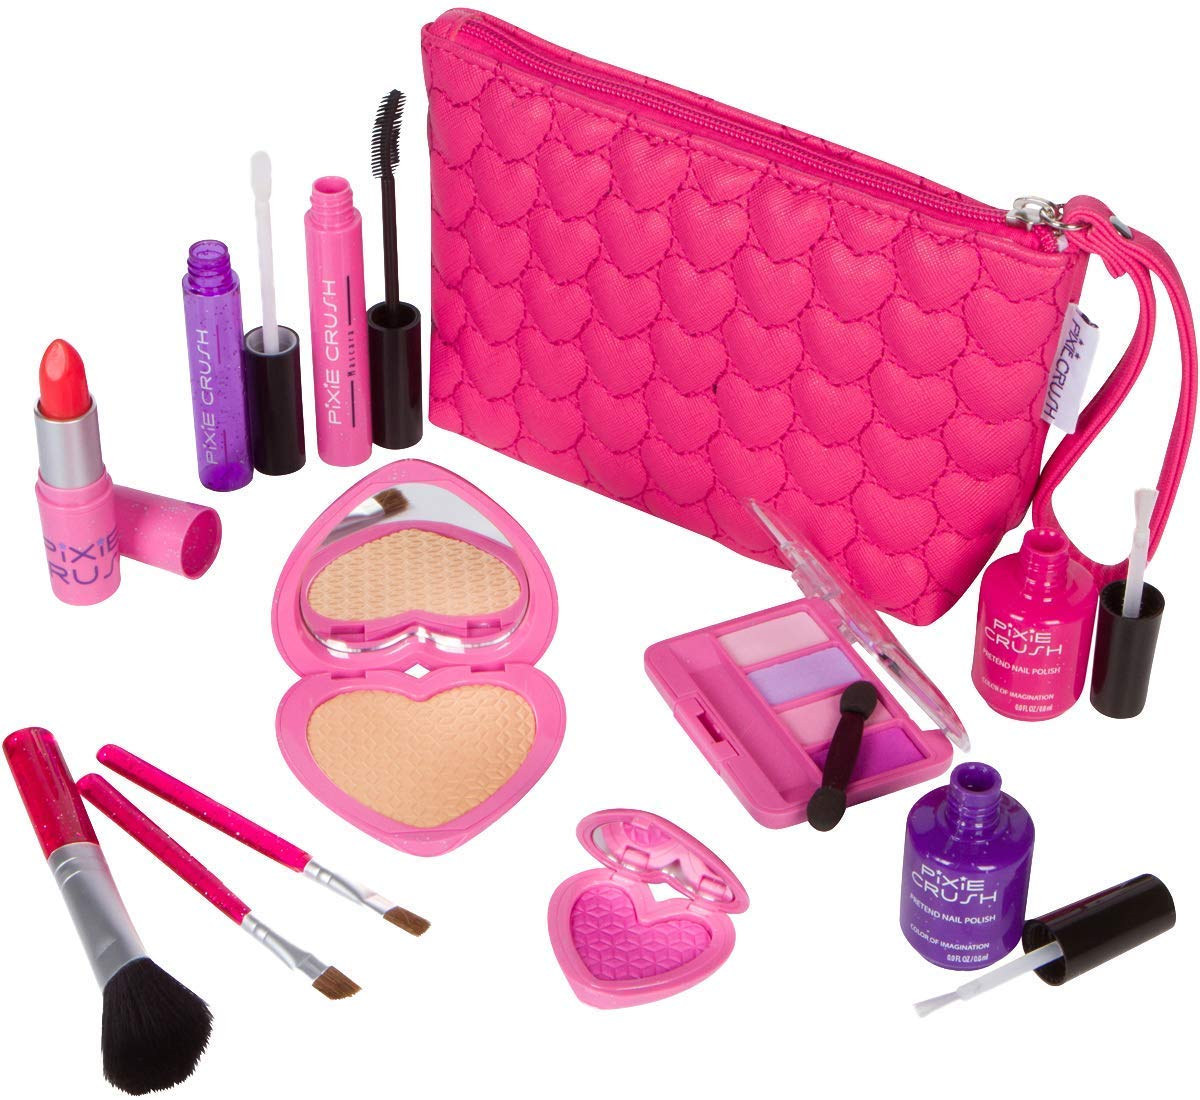 Love Series Designer Girls Pretend Play Makeup Kit with Pink Heart Pouch